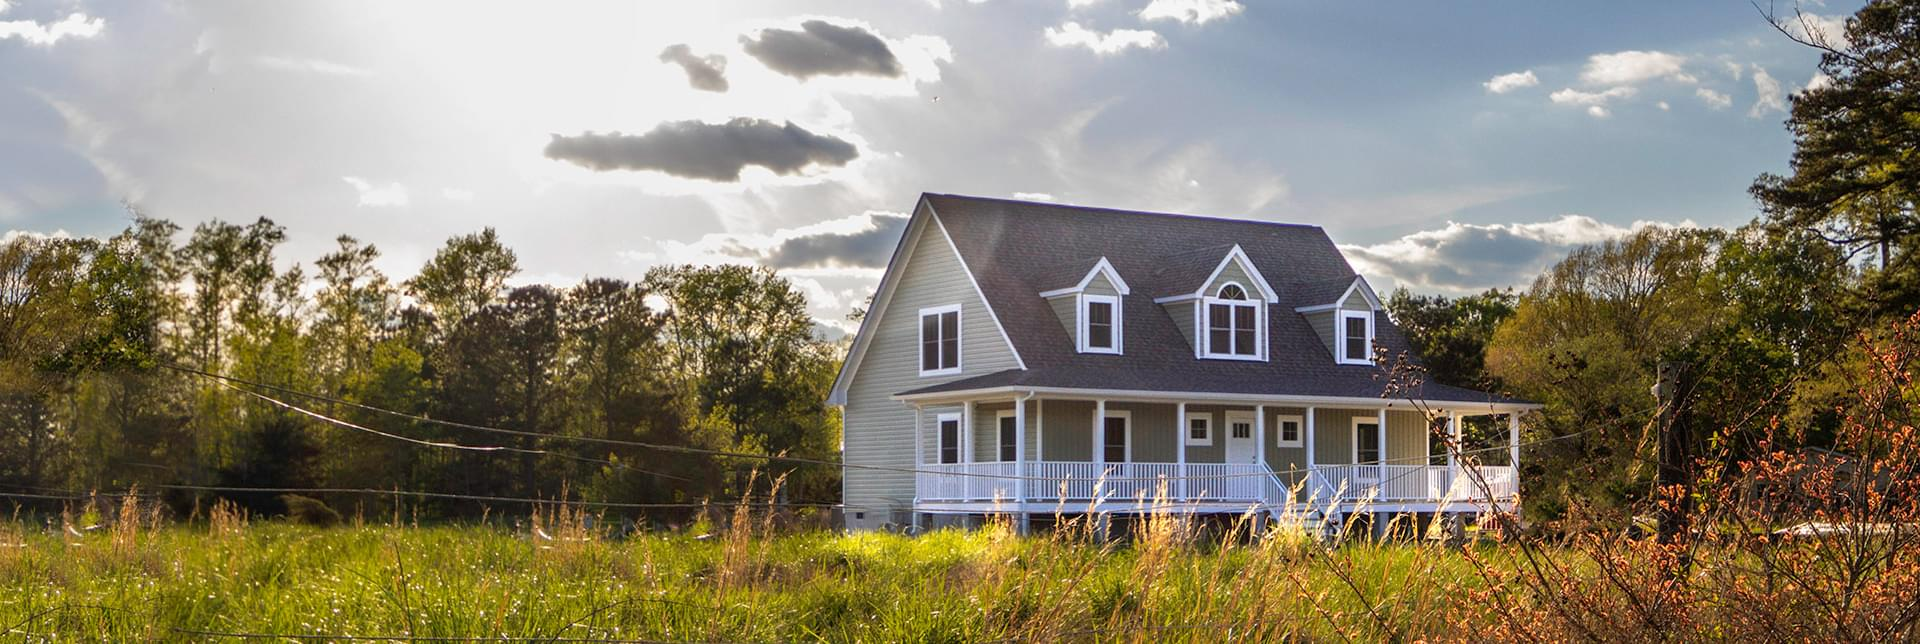 New Homes in New Kent County VA